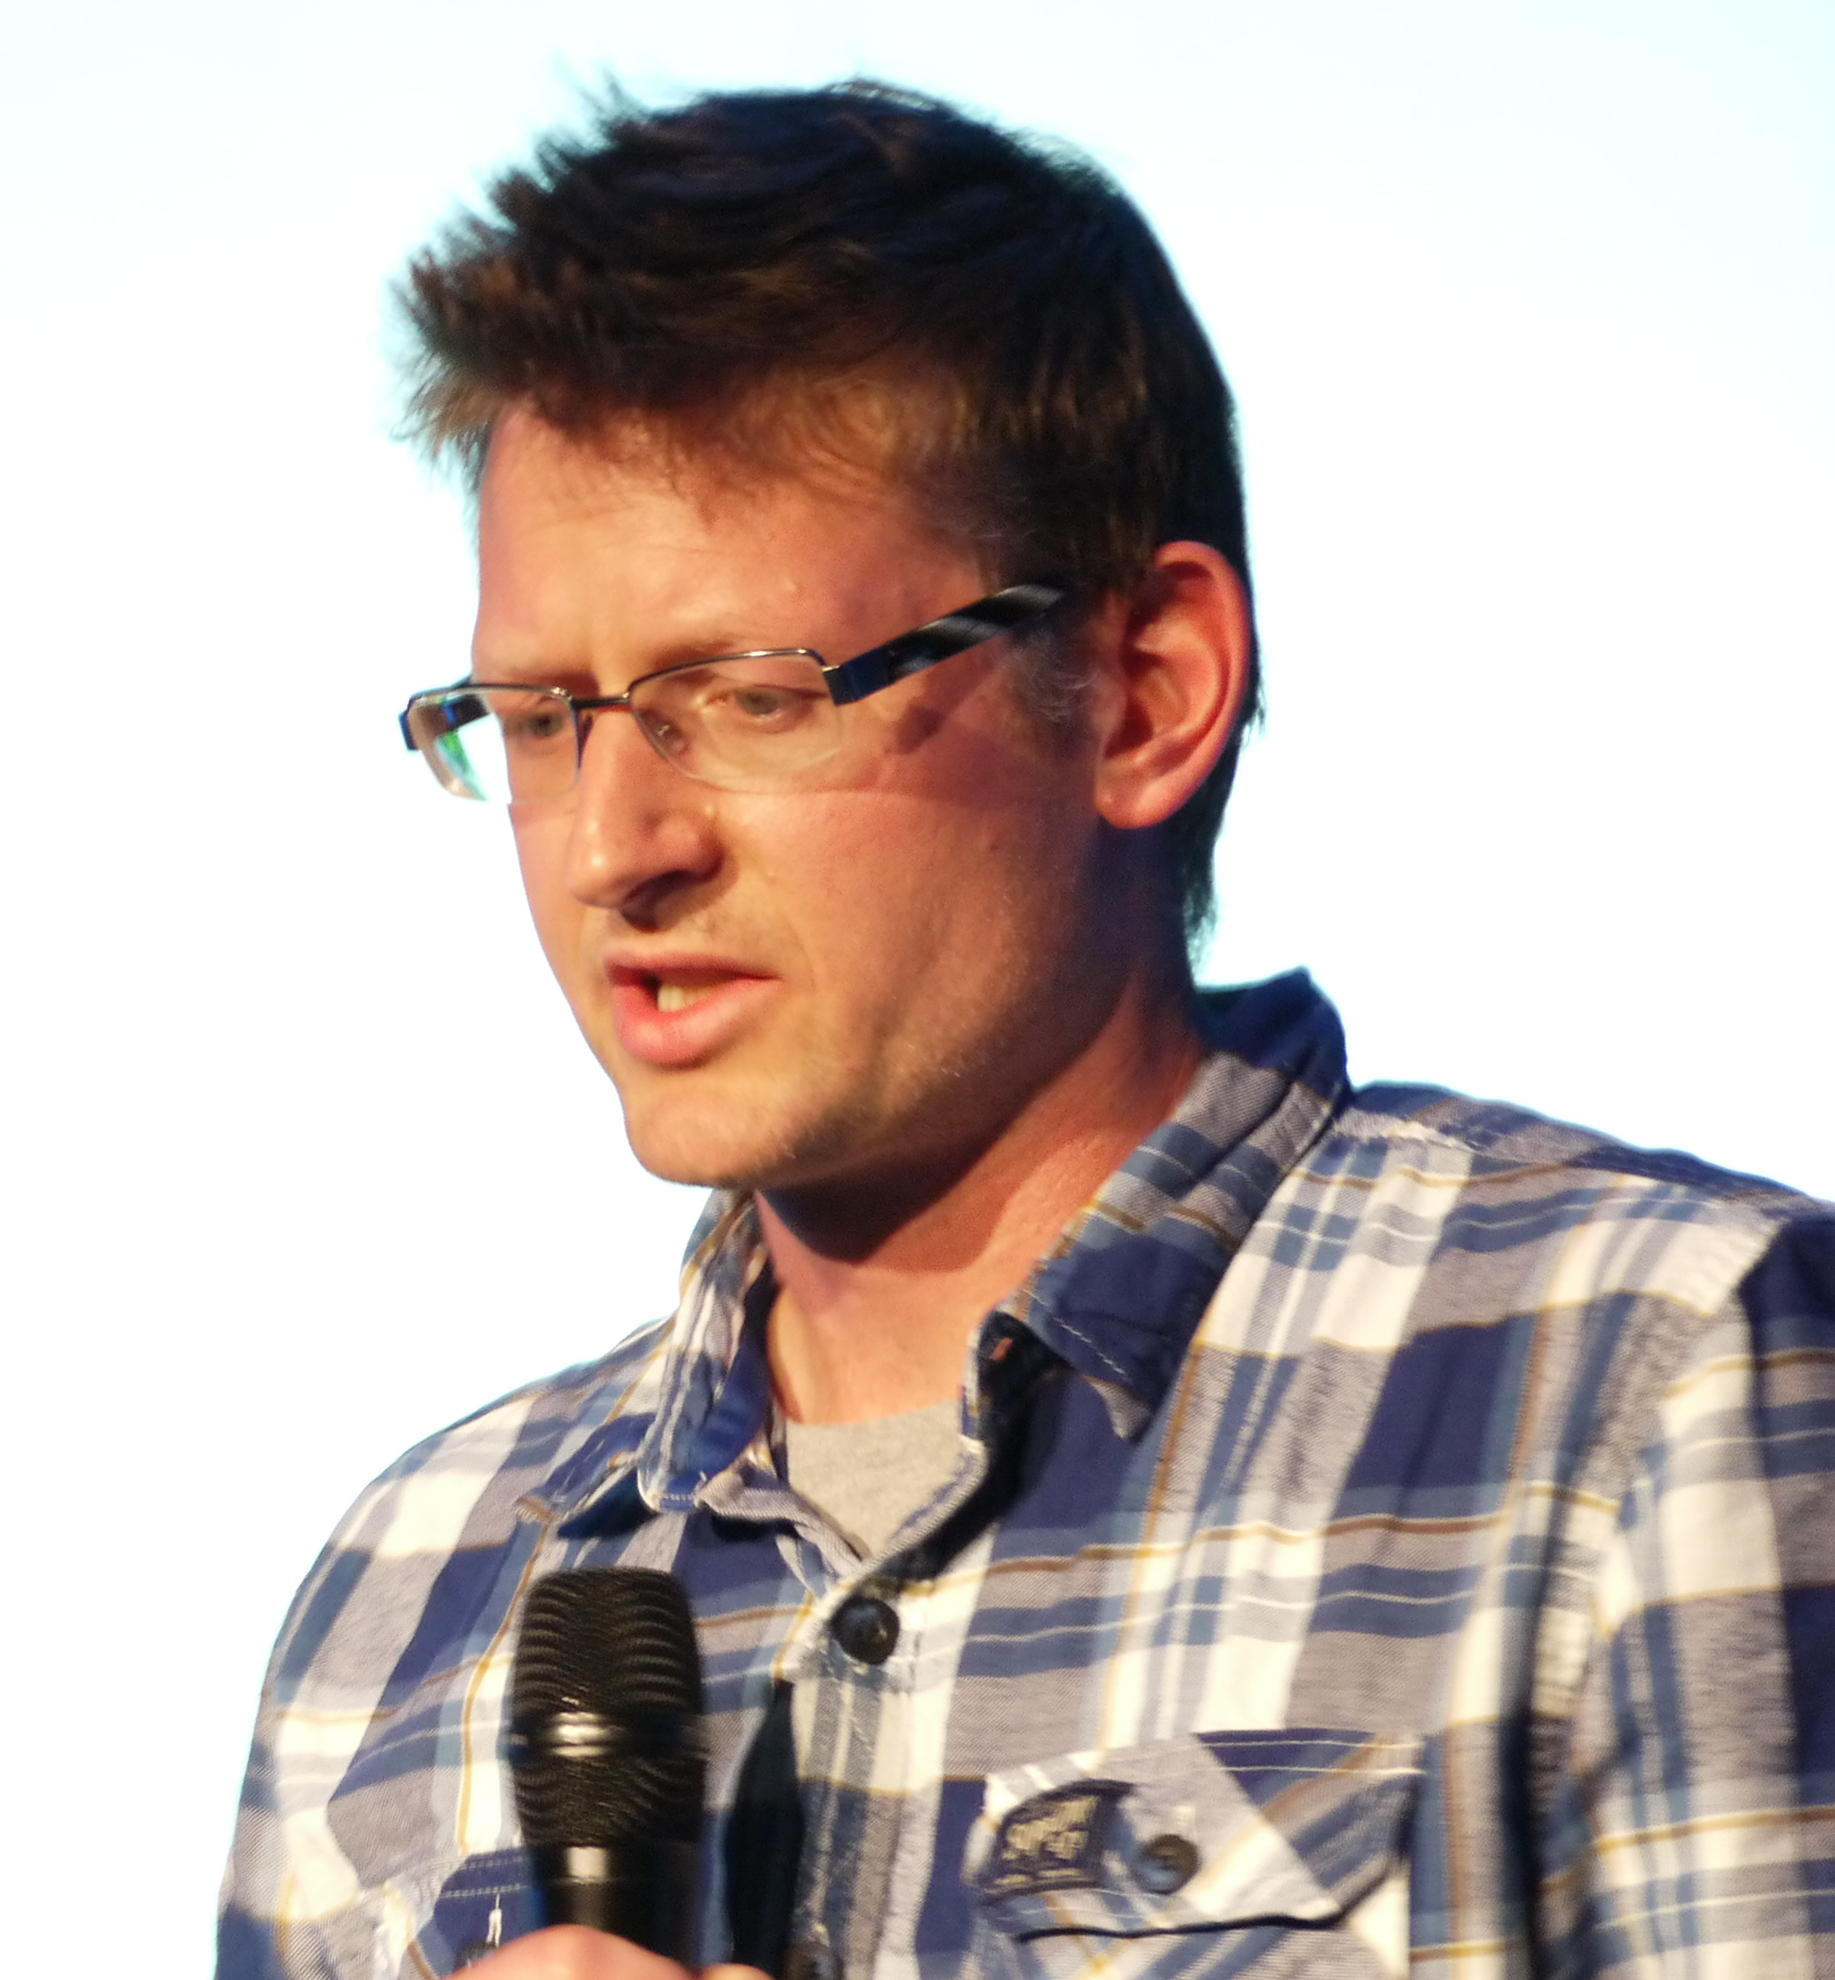 Mark Lynas speaking at [[QED (conference)|QED 2013]].